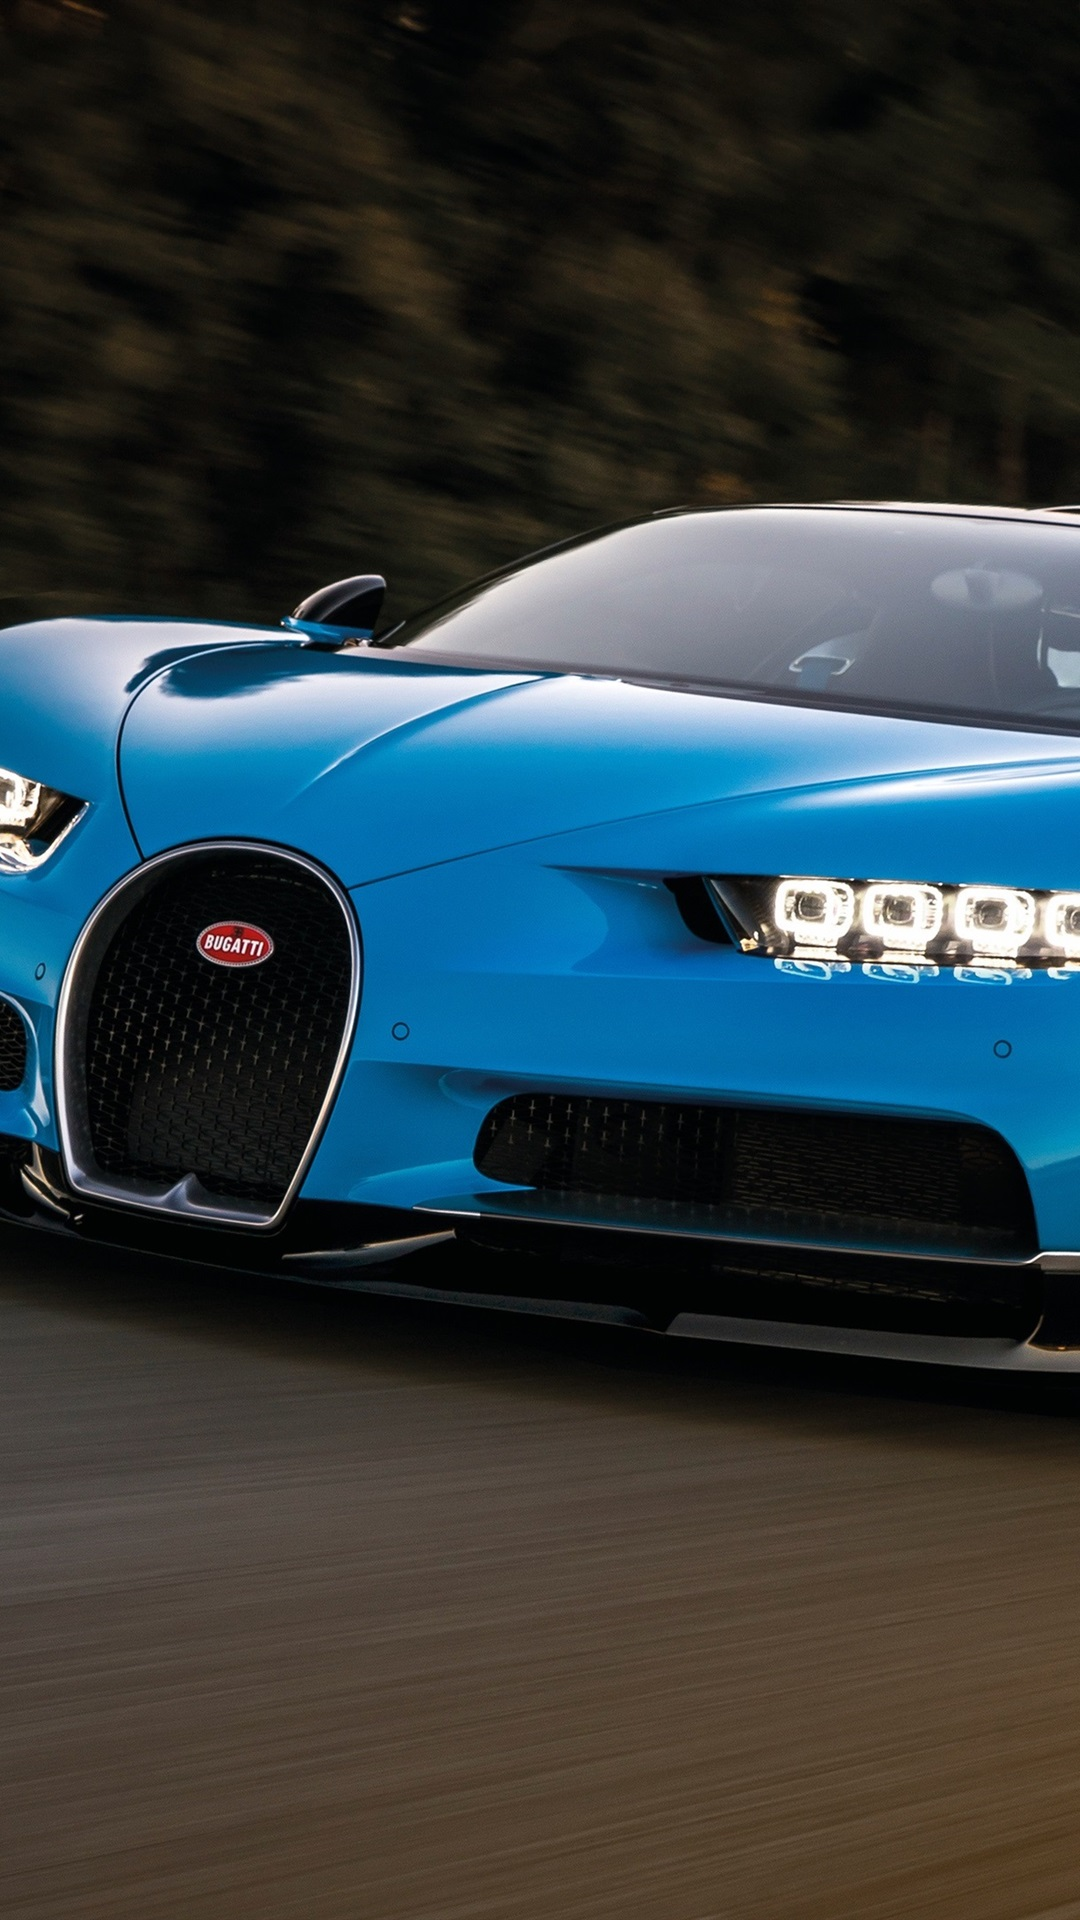 Wallpaper Blue Bugatti Chiron Supercar Speed 3840x2160 Uhd 4k Picture Image